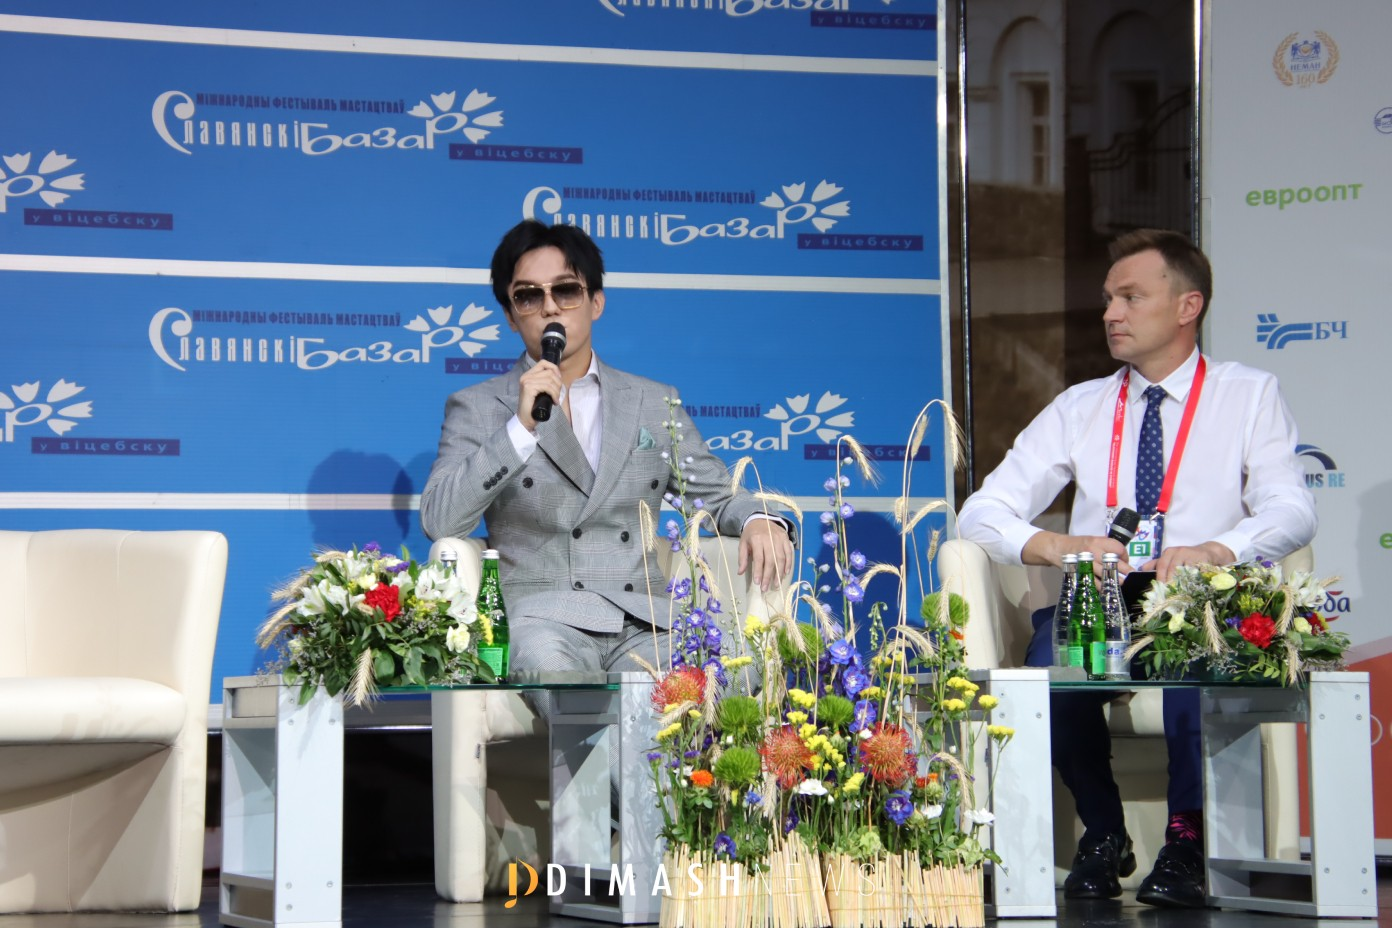 Dimash in Vitebsk: Big solo concert is to be expected, unless the pandemic hits again